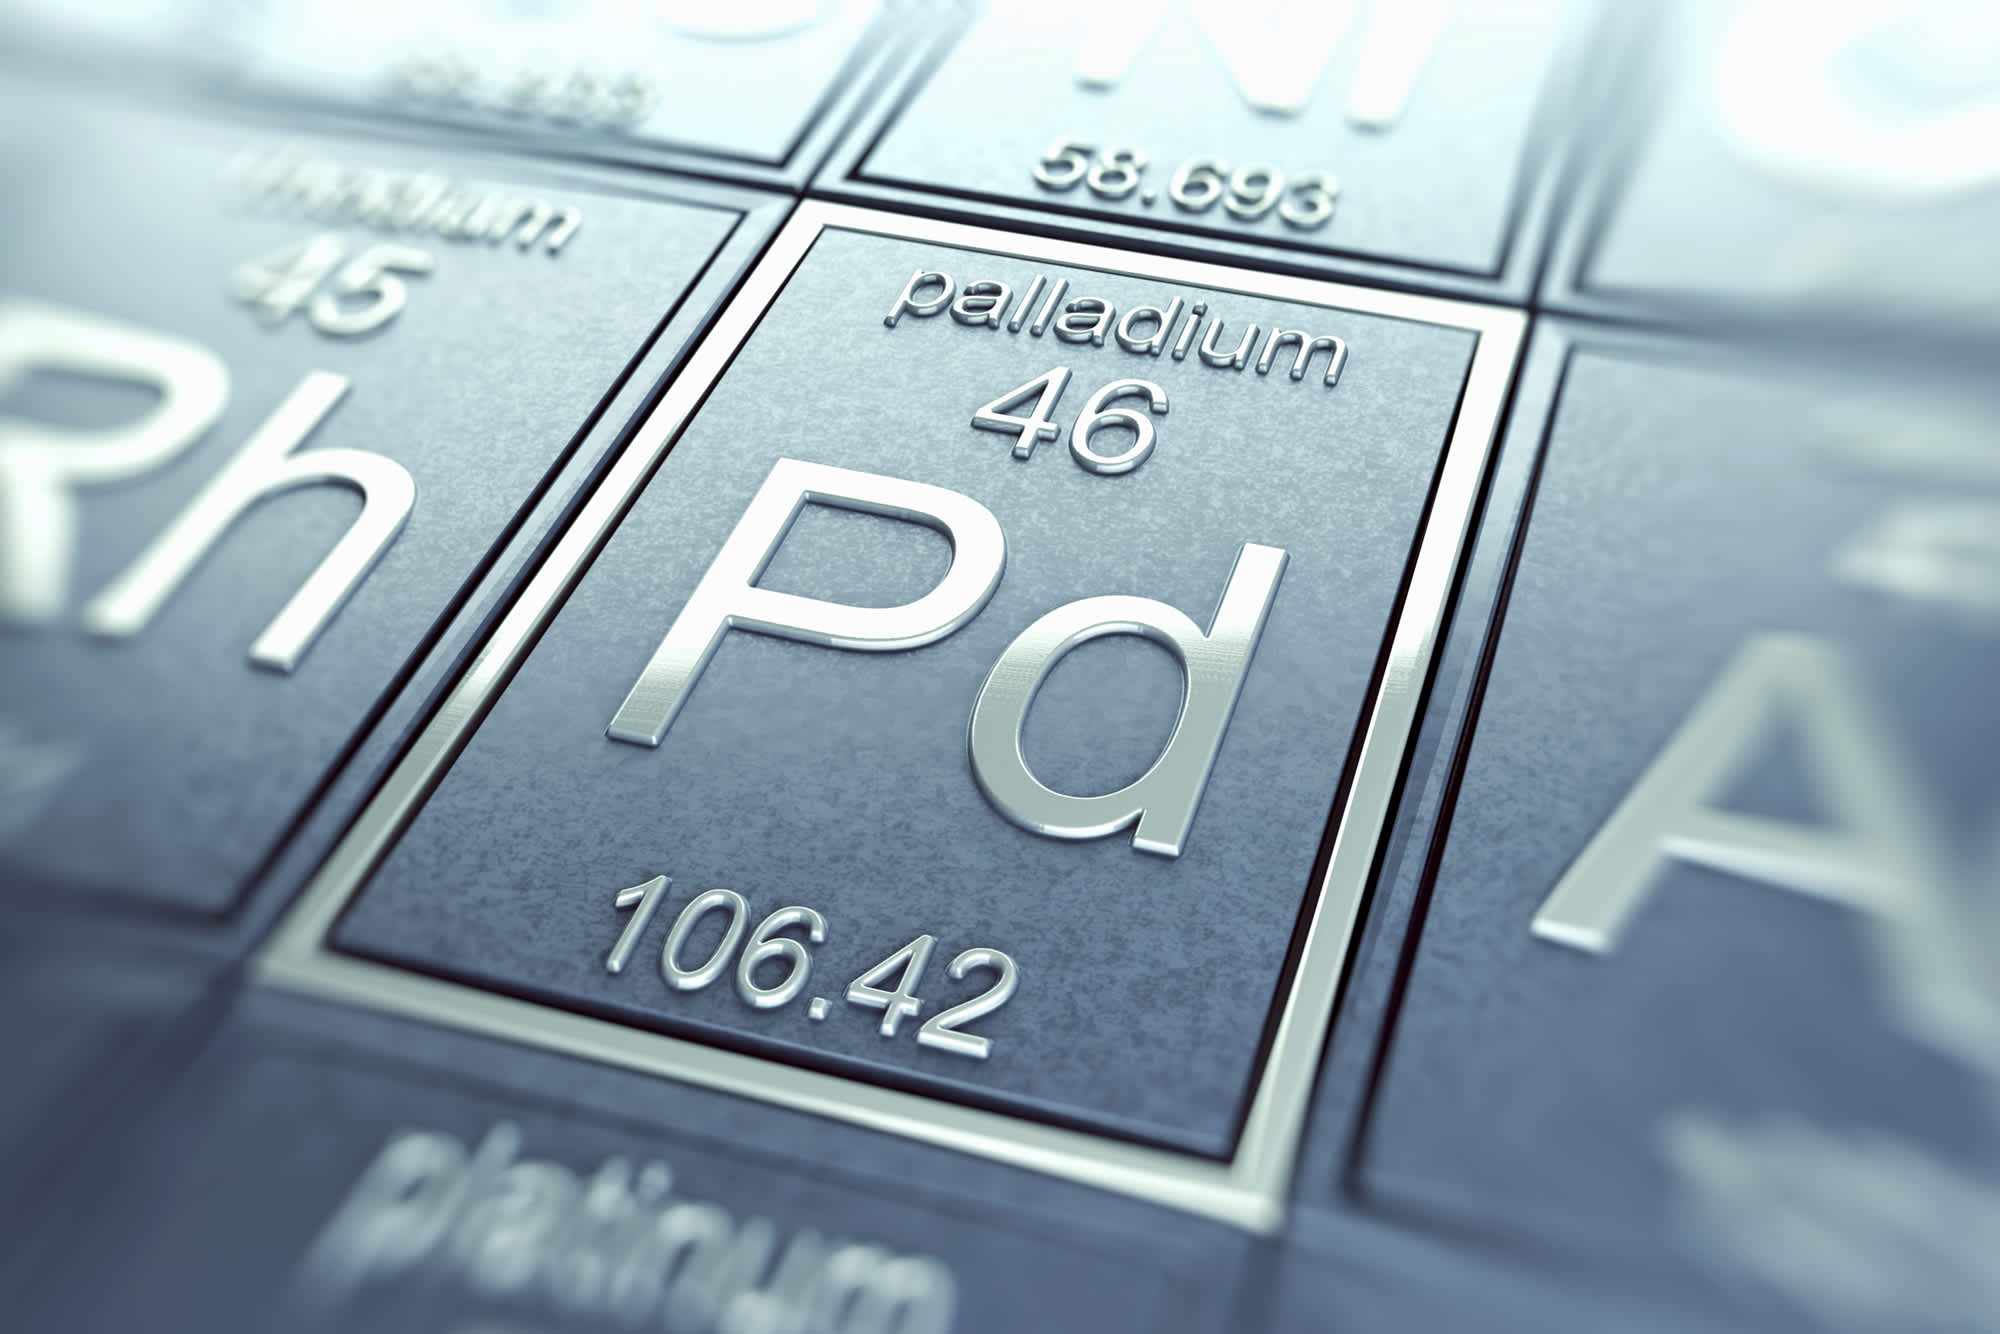 Palladium Prices Russia Conflict Pushes Price For Commodity Higher